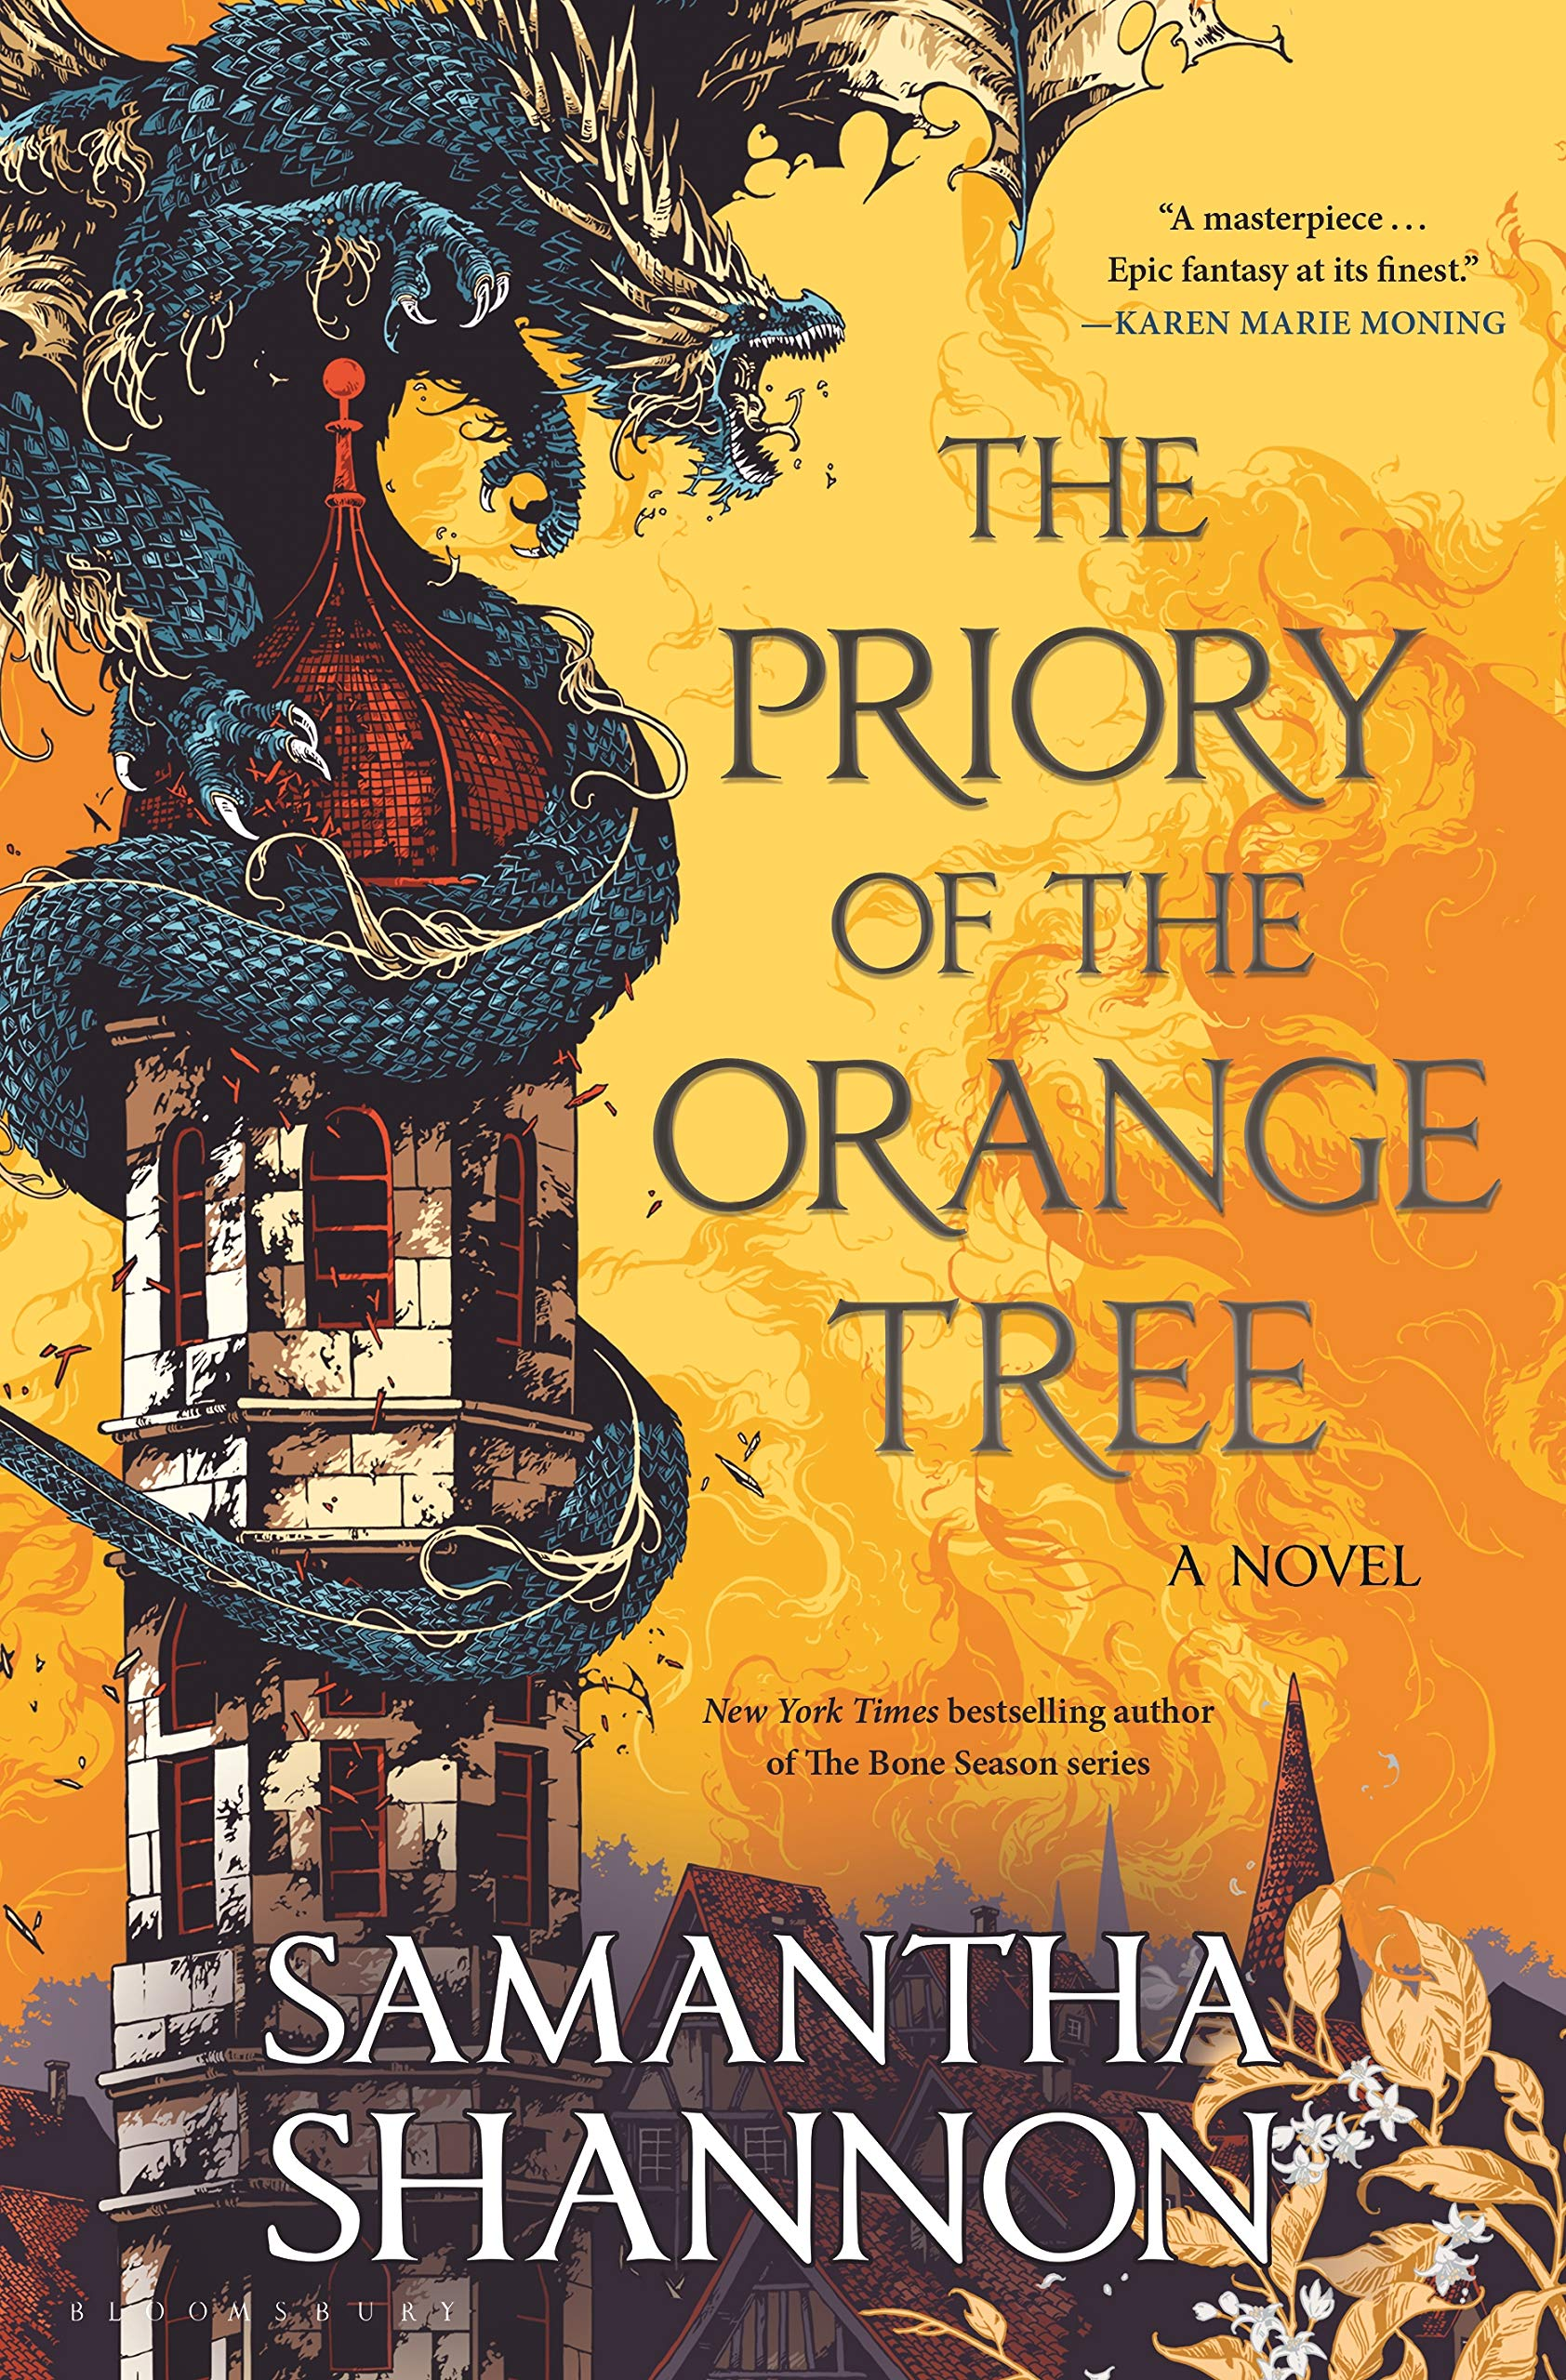 Amazon.com: The Priory of the Orange Tree (9781635570298): Shannon,  Samantha: Books